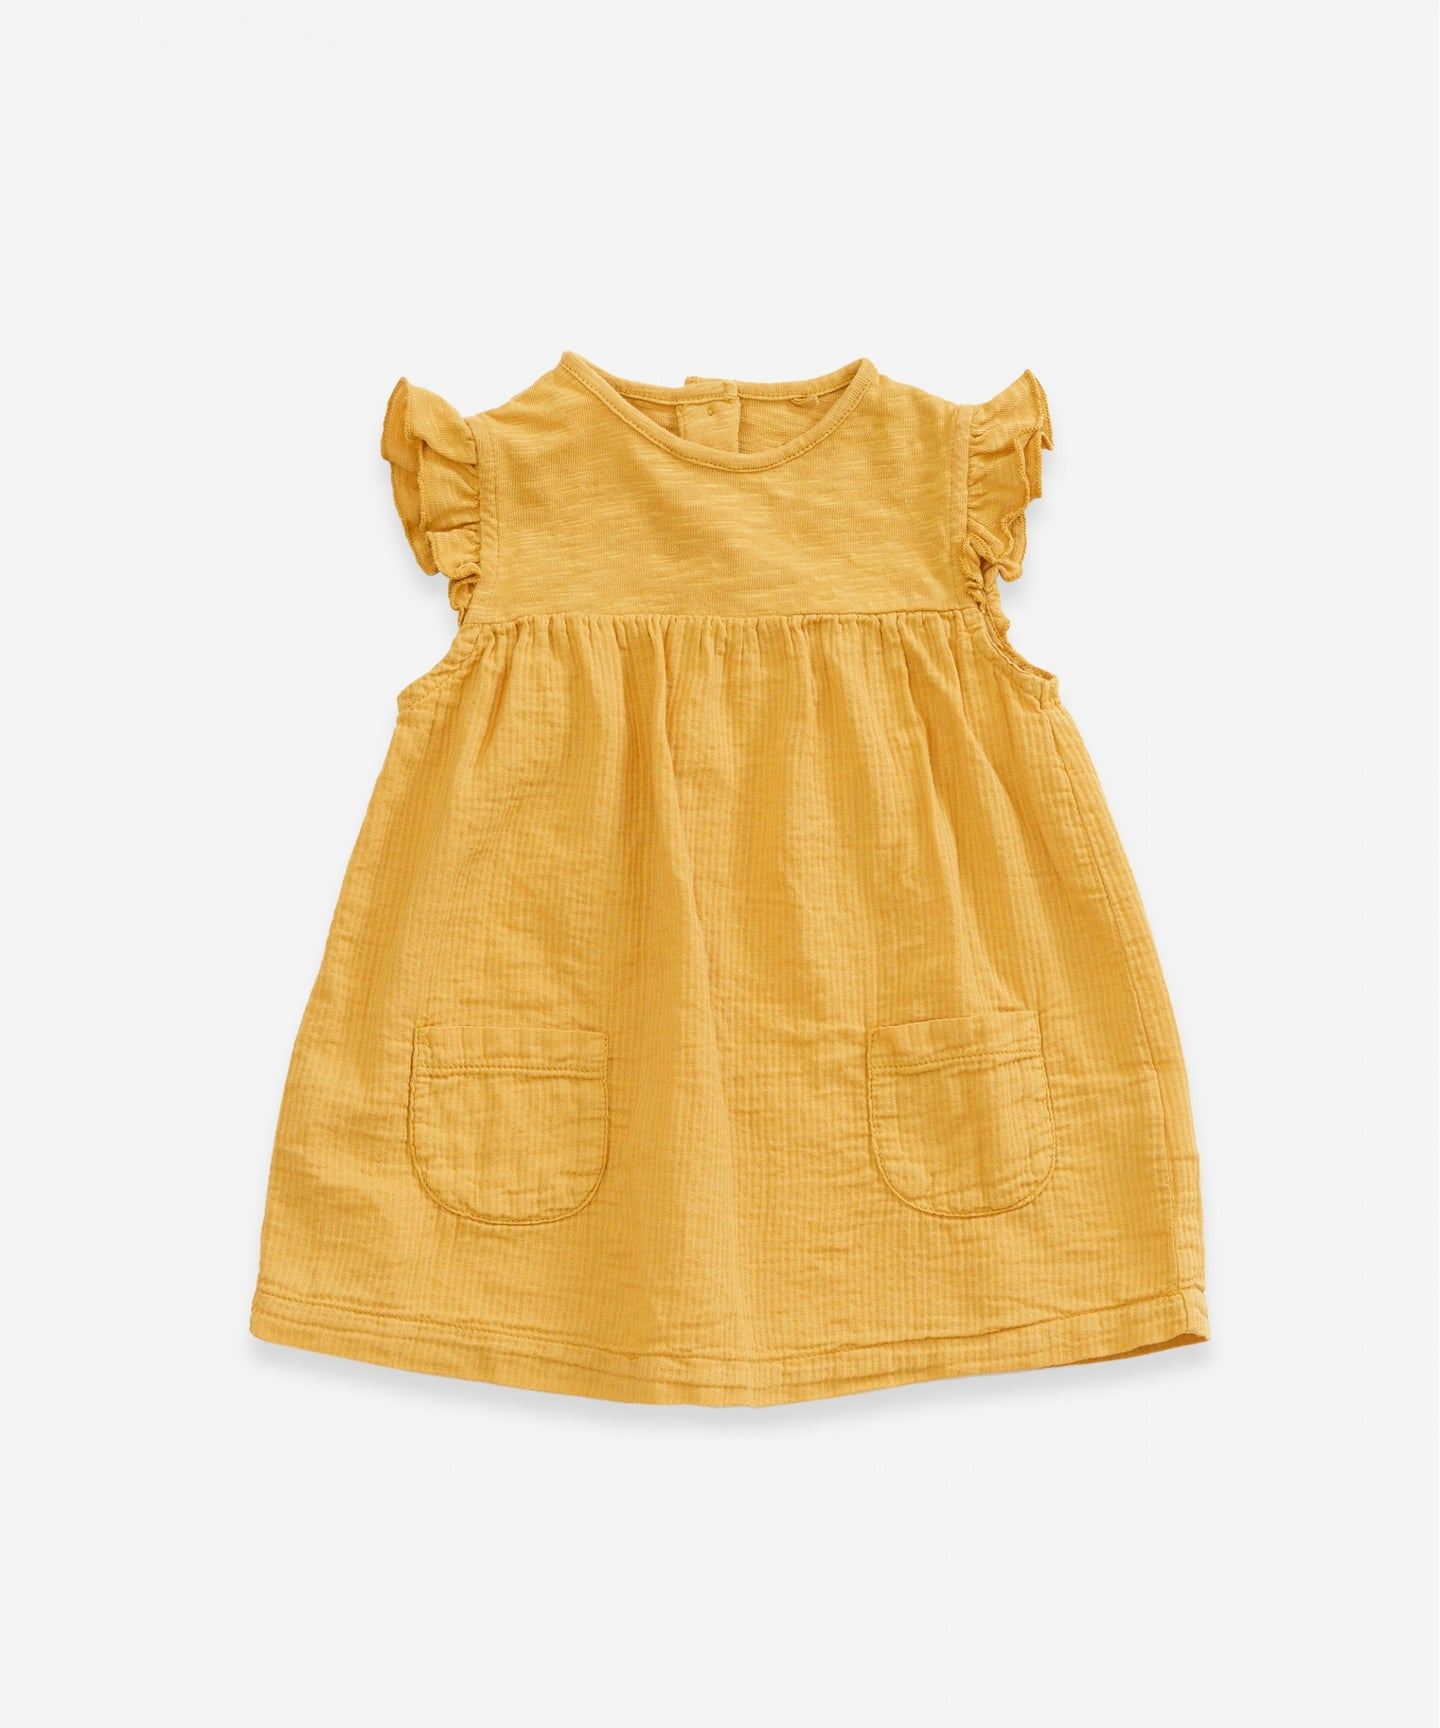 Organic Cotton Dress w/ Pockets - Mustard